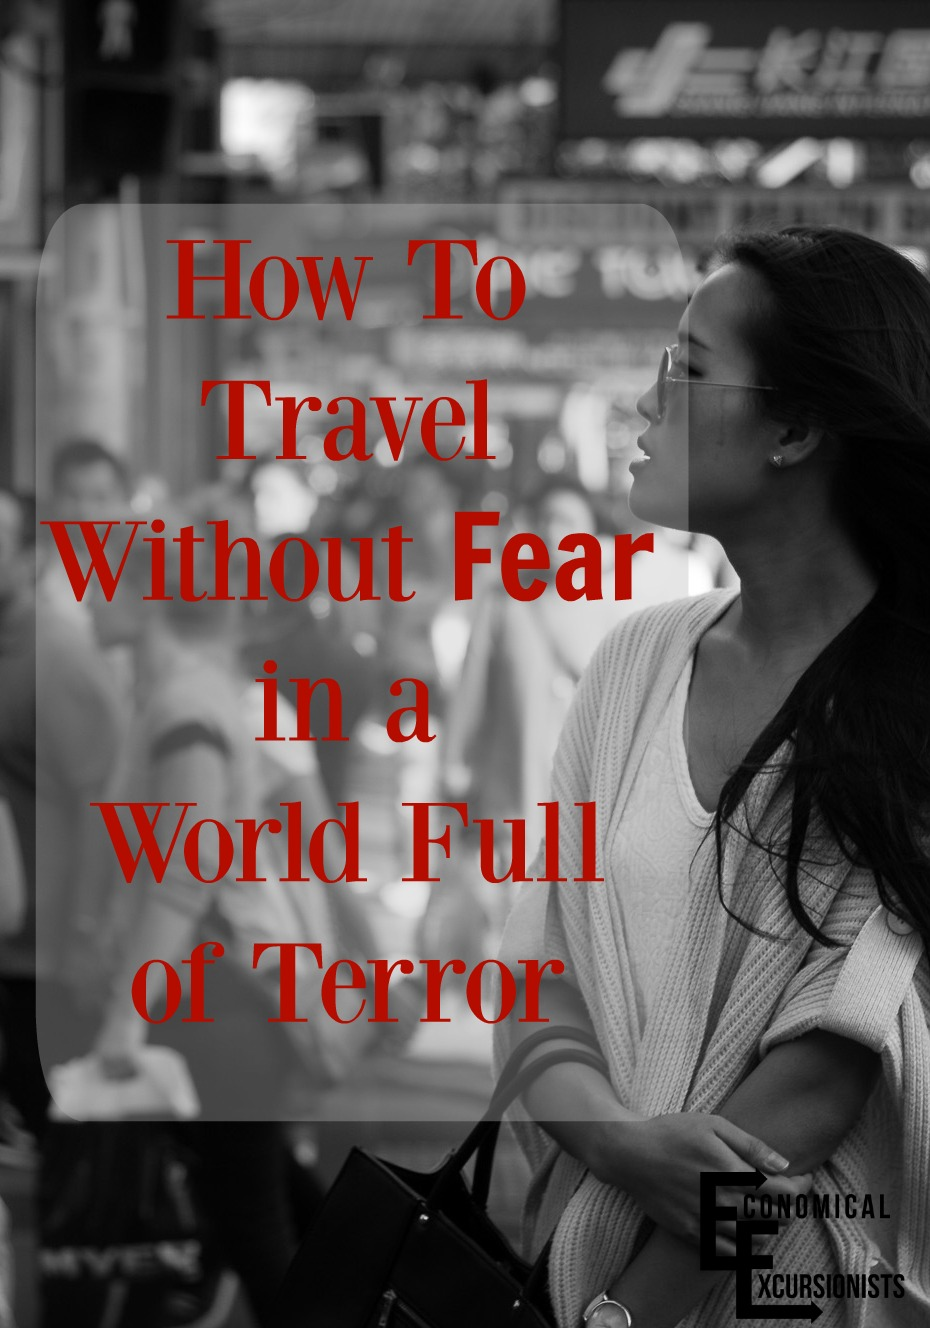 We can't live our lives in fear. Even if we have to adapt a few ways of traveling, we can't let the idea of terror prevent us from experiencing the world